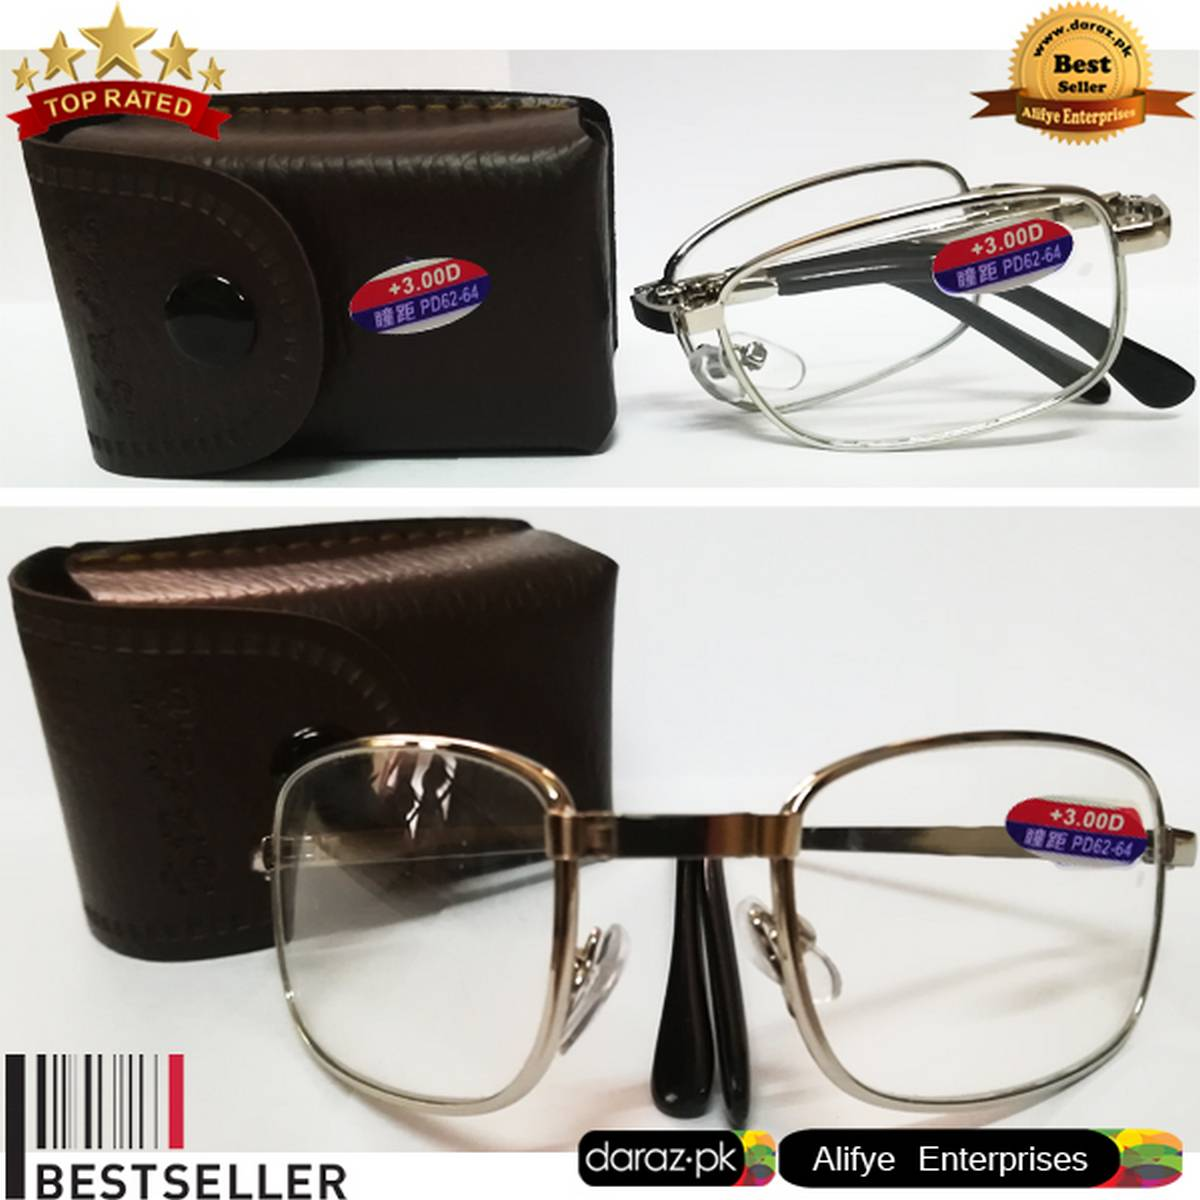 Imported Foldable Optical Reading Glasses +3.00 Prescription Eyeglass Metal Men & Women Ray Computer Working Folding Reading Glasses with Case